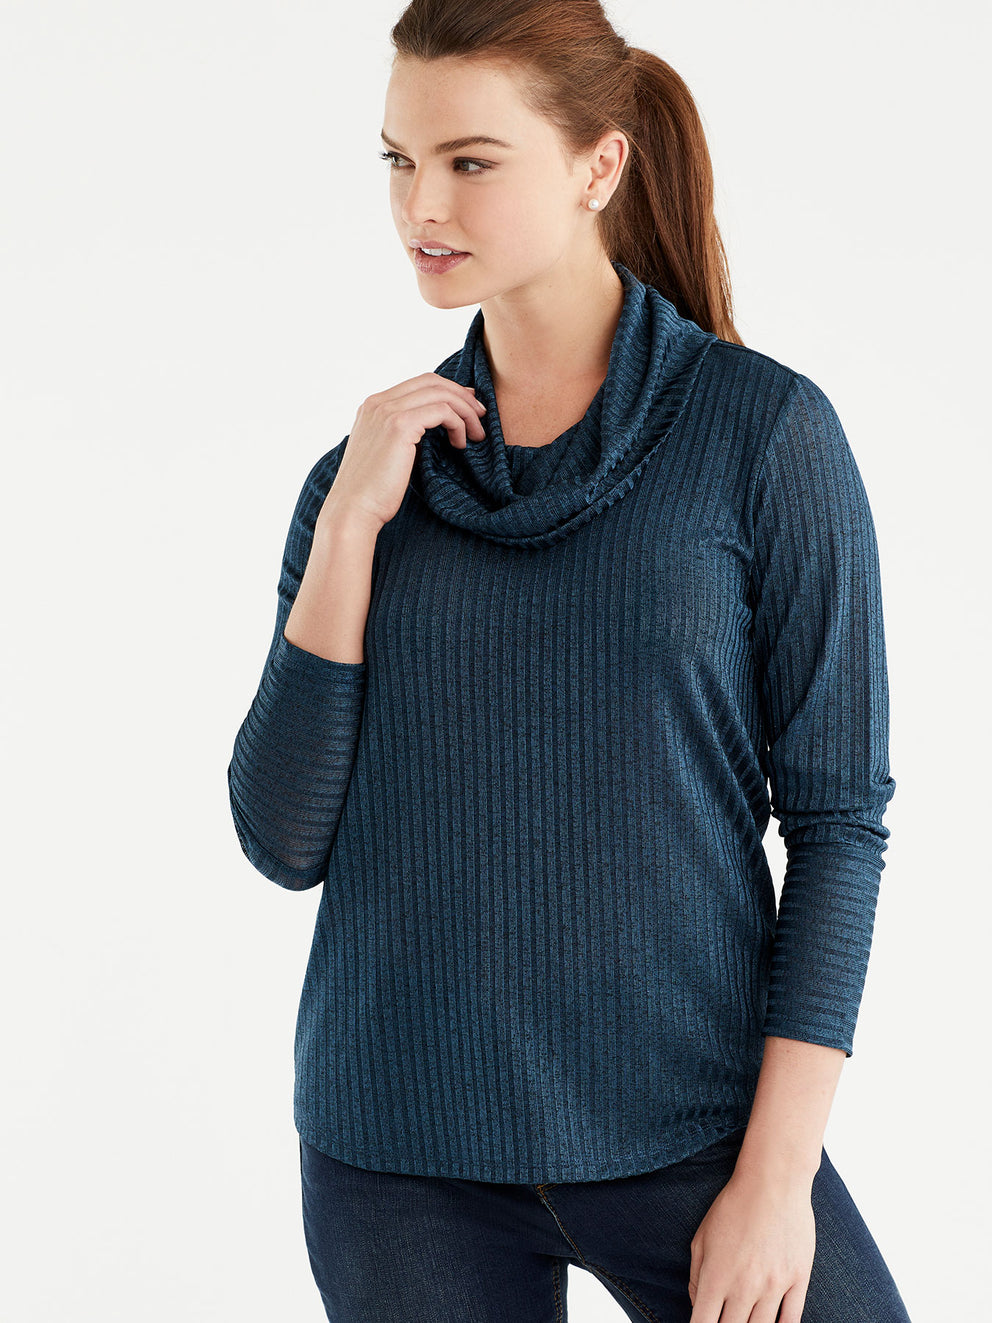 The Jones New York Marled Rib Cowl Neck Top, Plus Size in color Deep Sky - Image Position 1